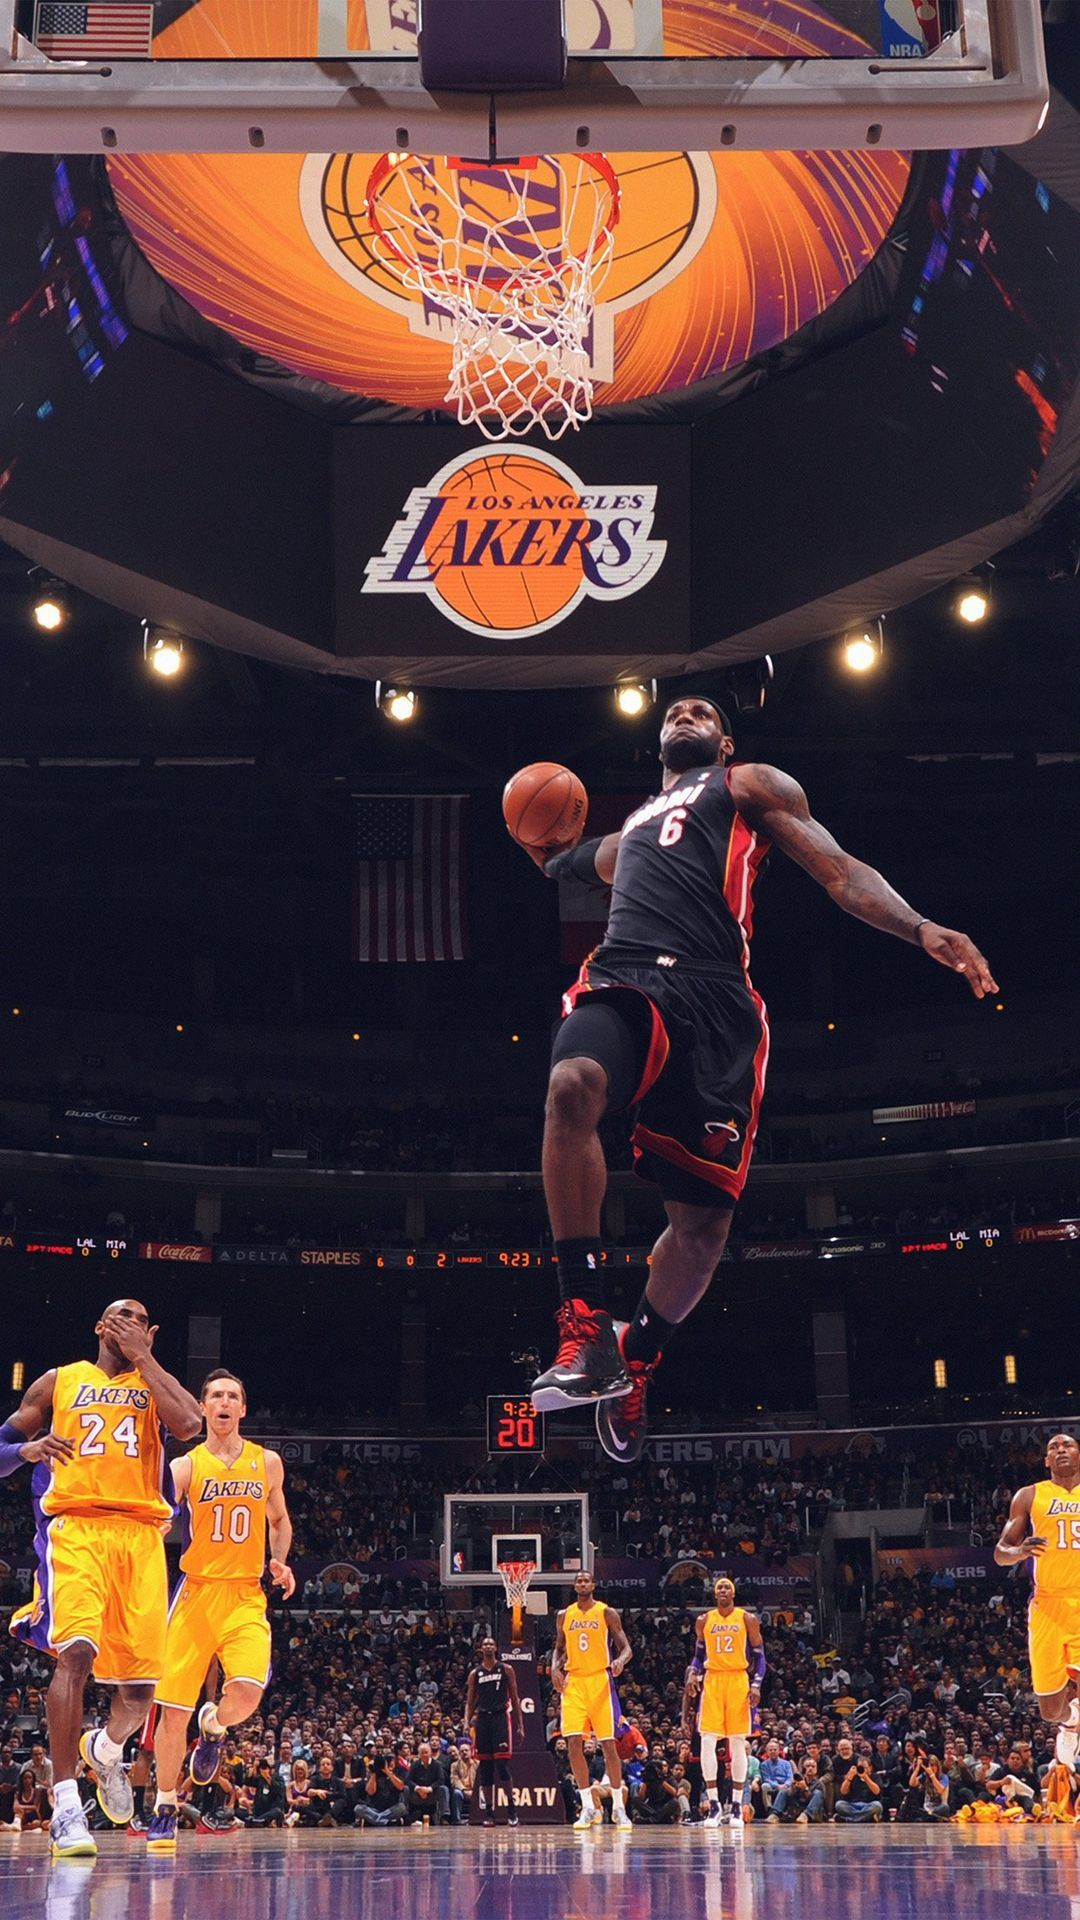 Download Cool Basketball Wallpaper Ios On High Quality Wallpaper On Hdwallpaper9 Com Iphone Andr In 2020 Lebron James Wallpapers Nba Basketball Dunks Nba Wallpapers